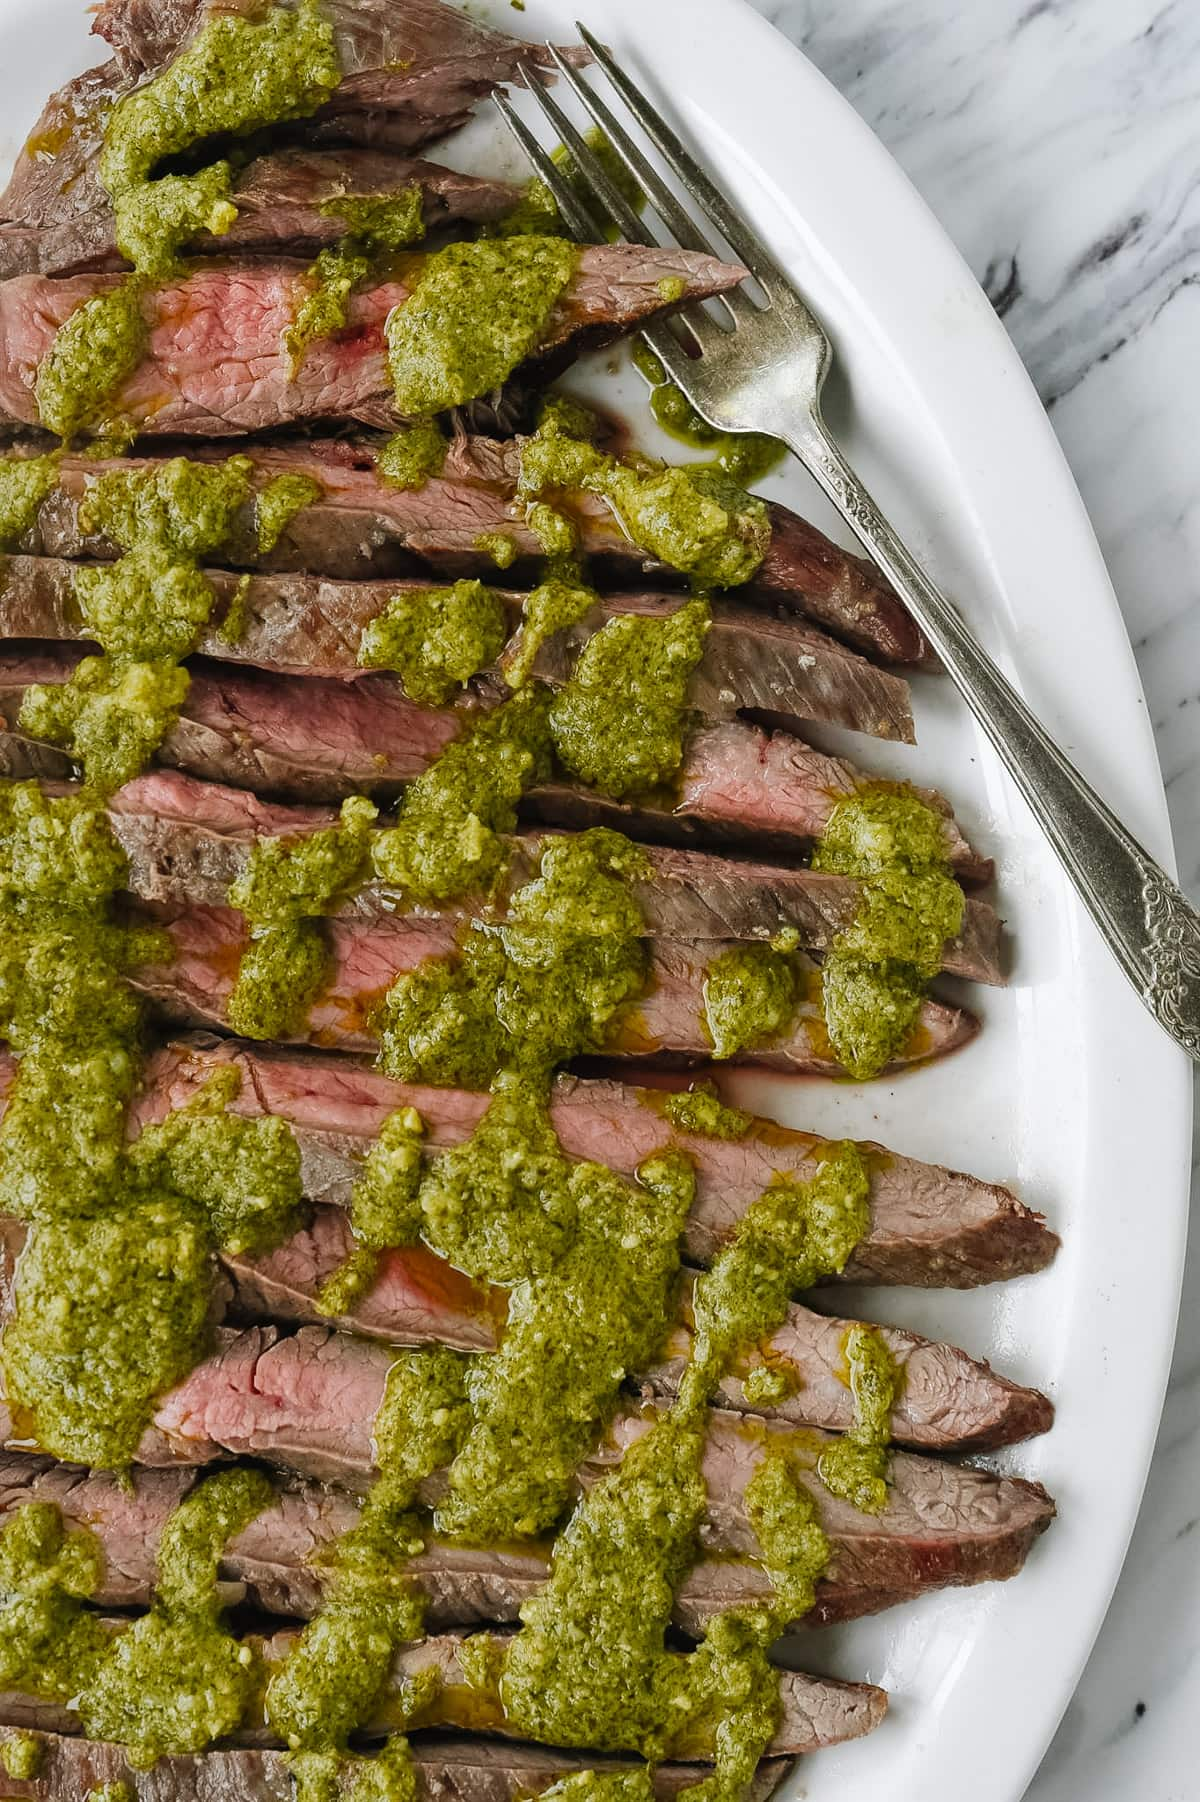 slices of pesto flank steak